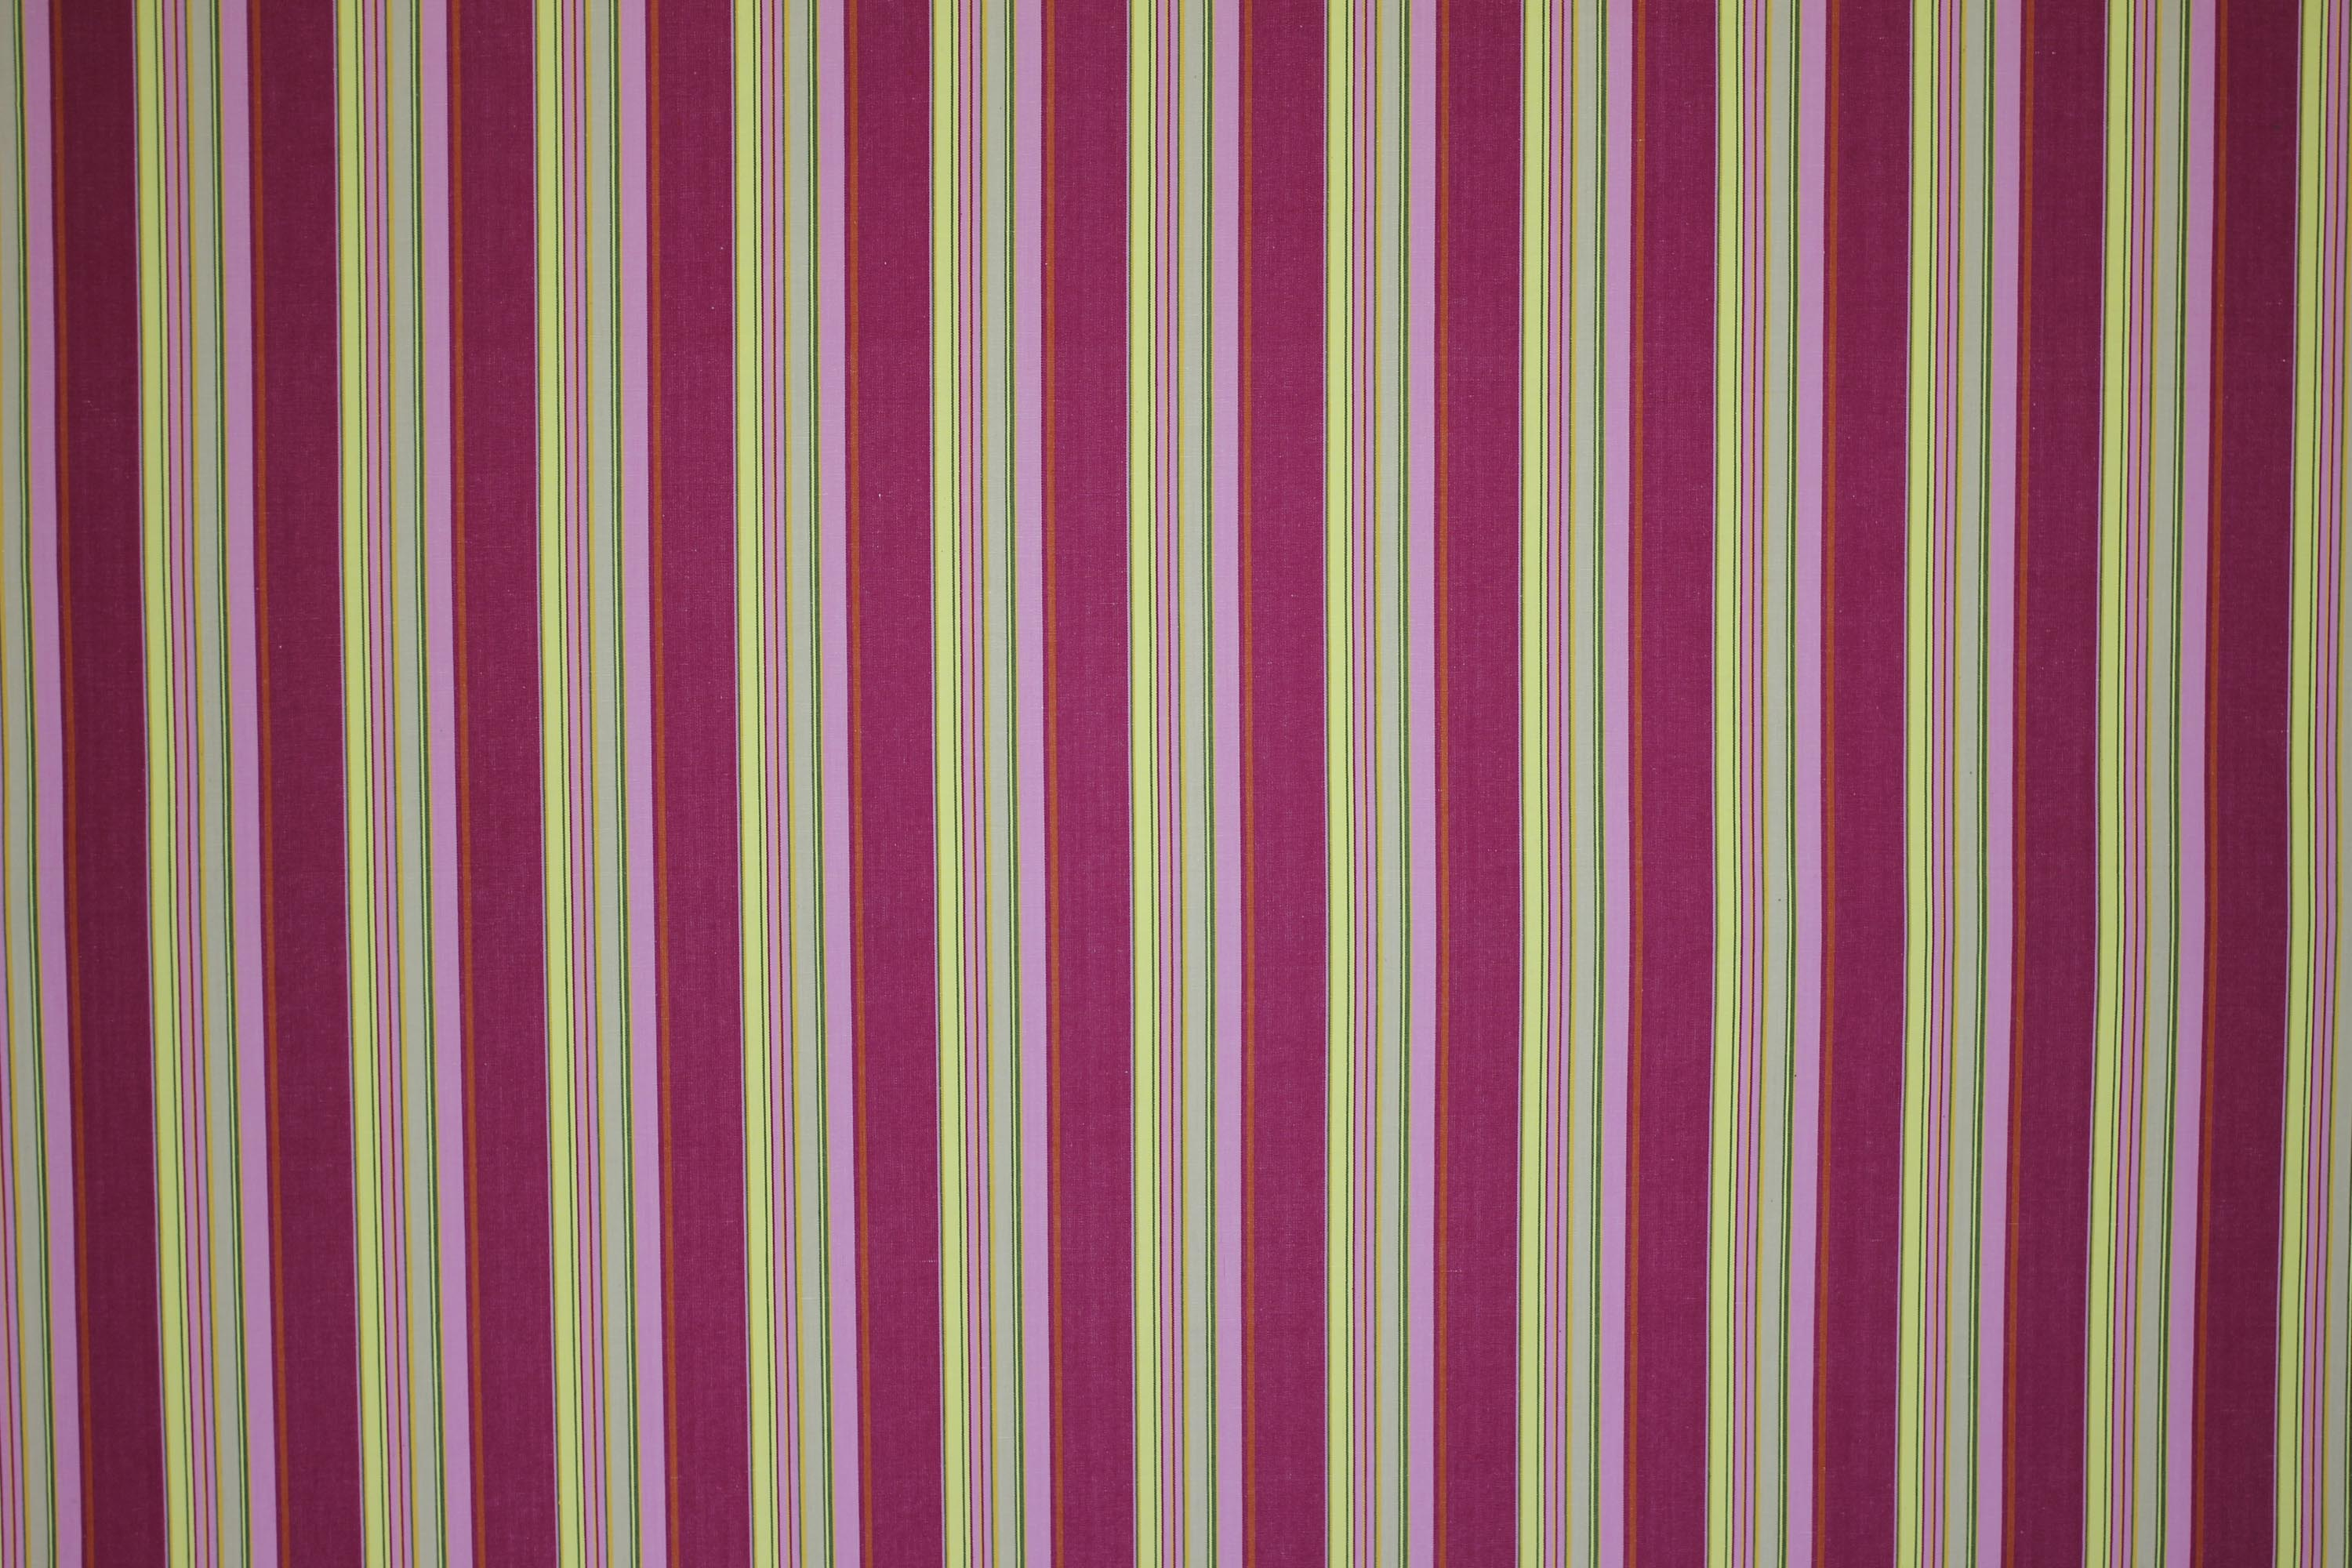 Bright Pink Striped Material With Lemon Yellow Pale Green Stripes